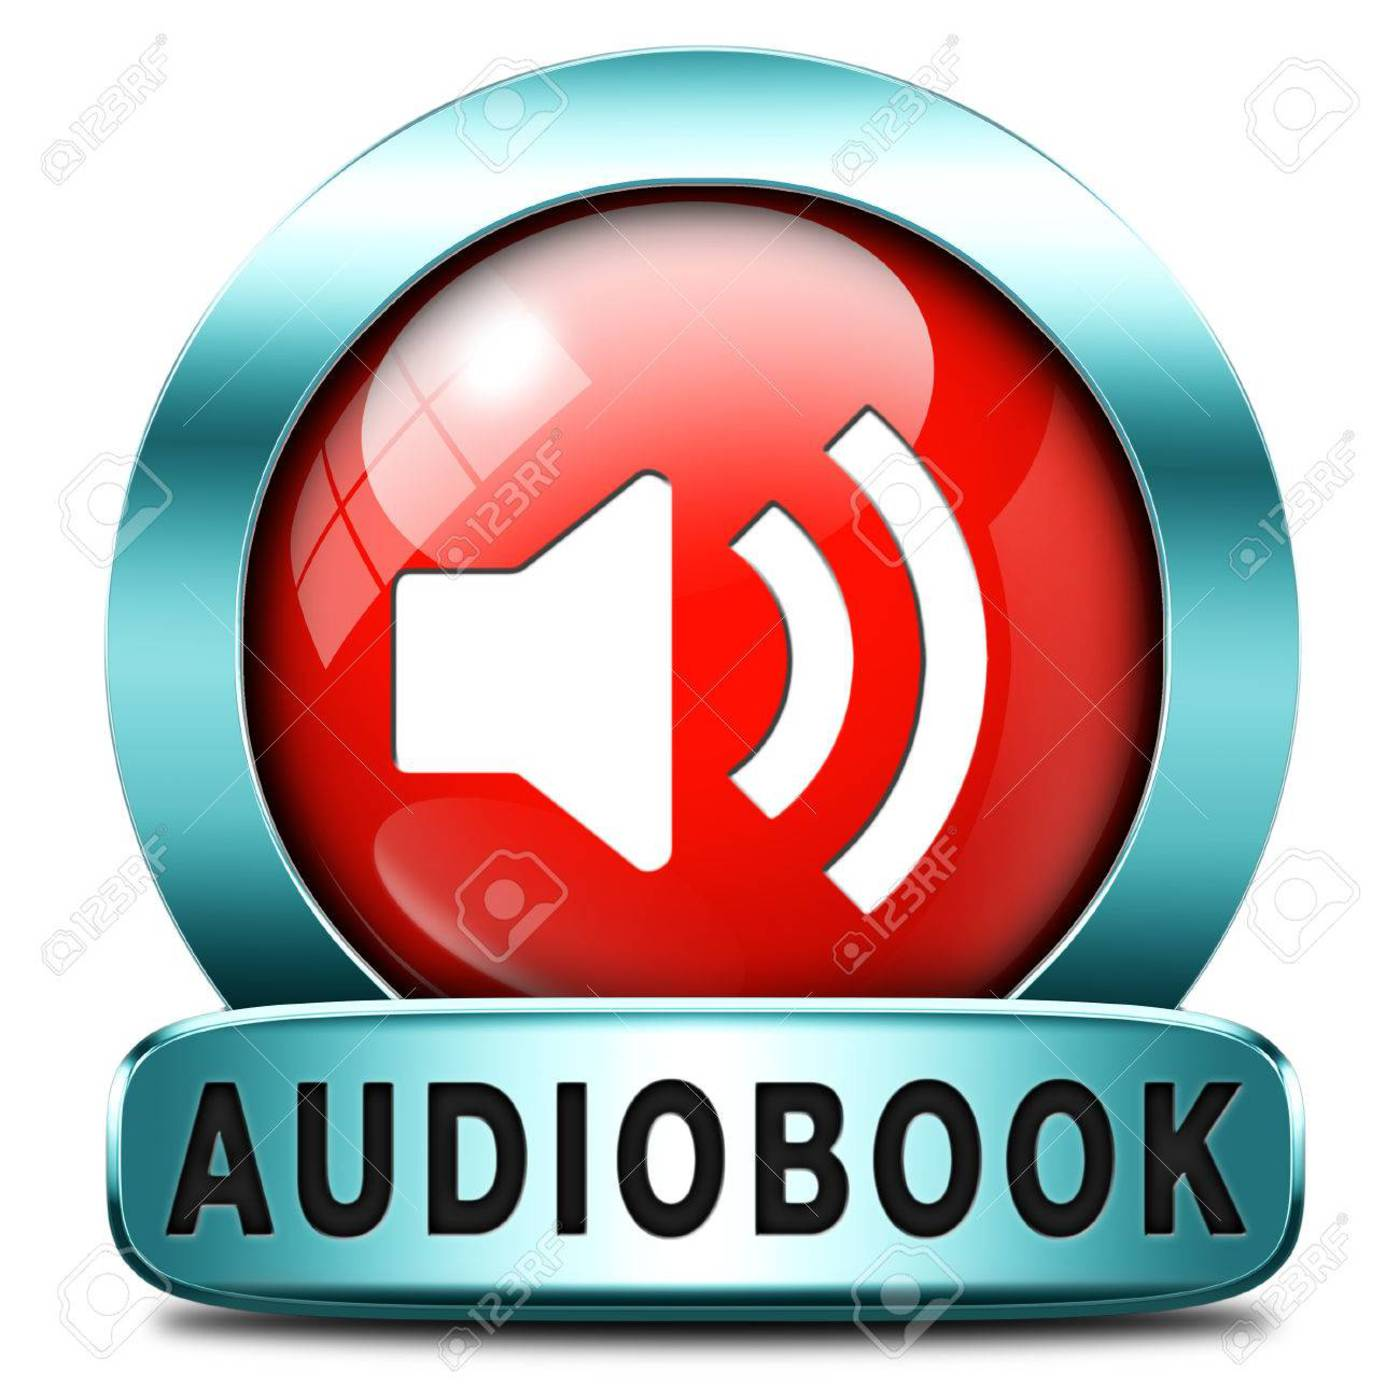 Get Best Audiobooks in Fiction and Contemporary